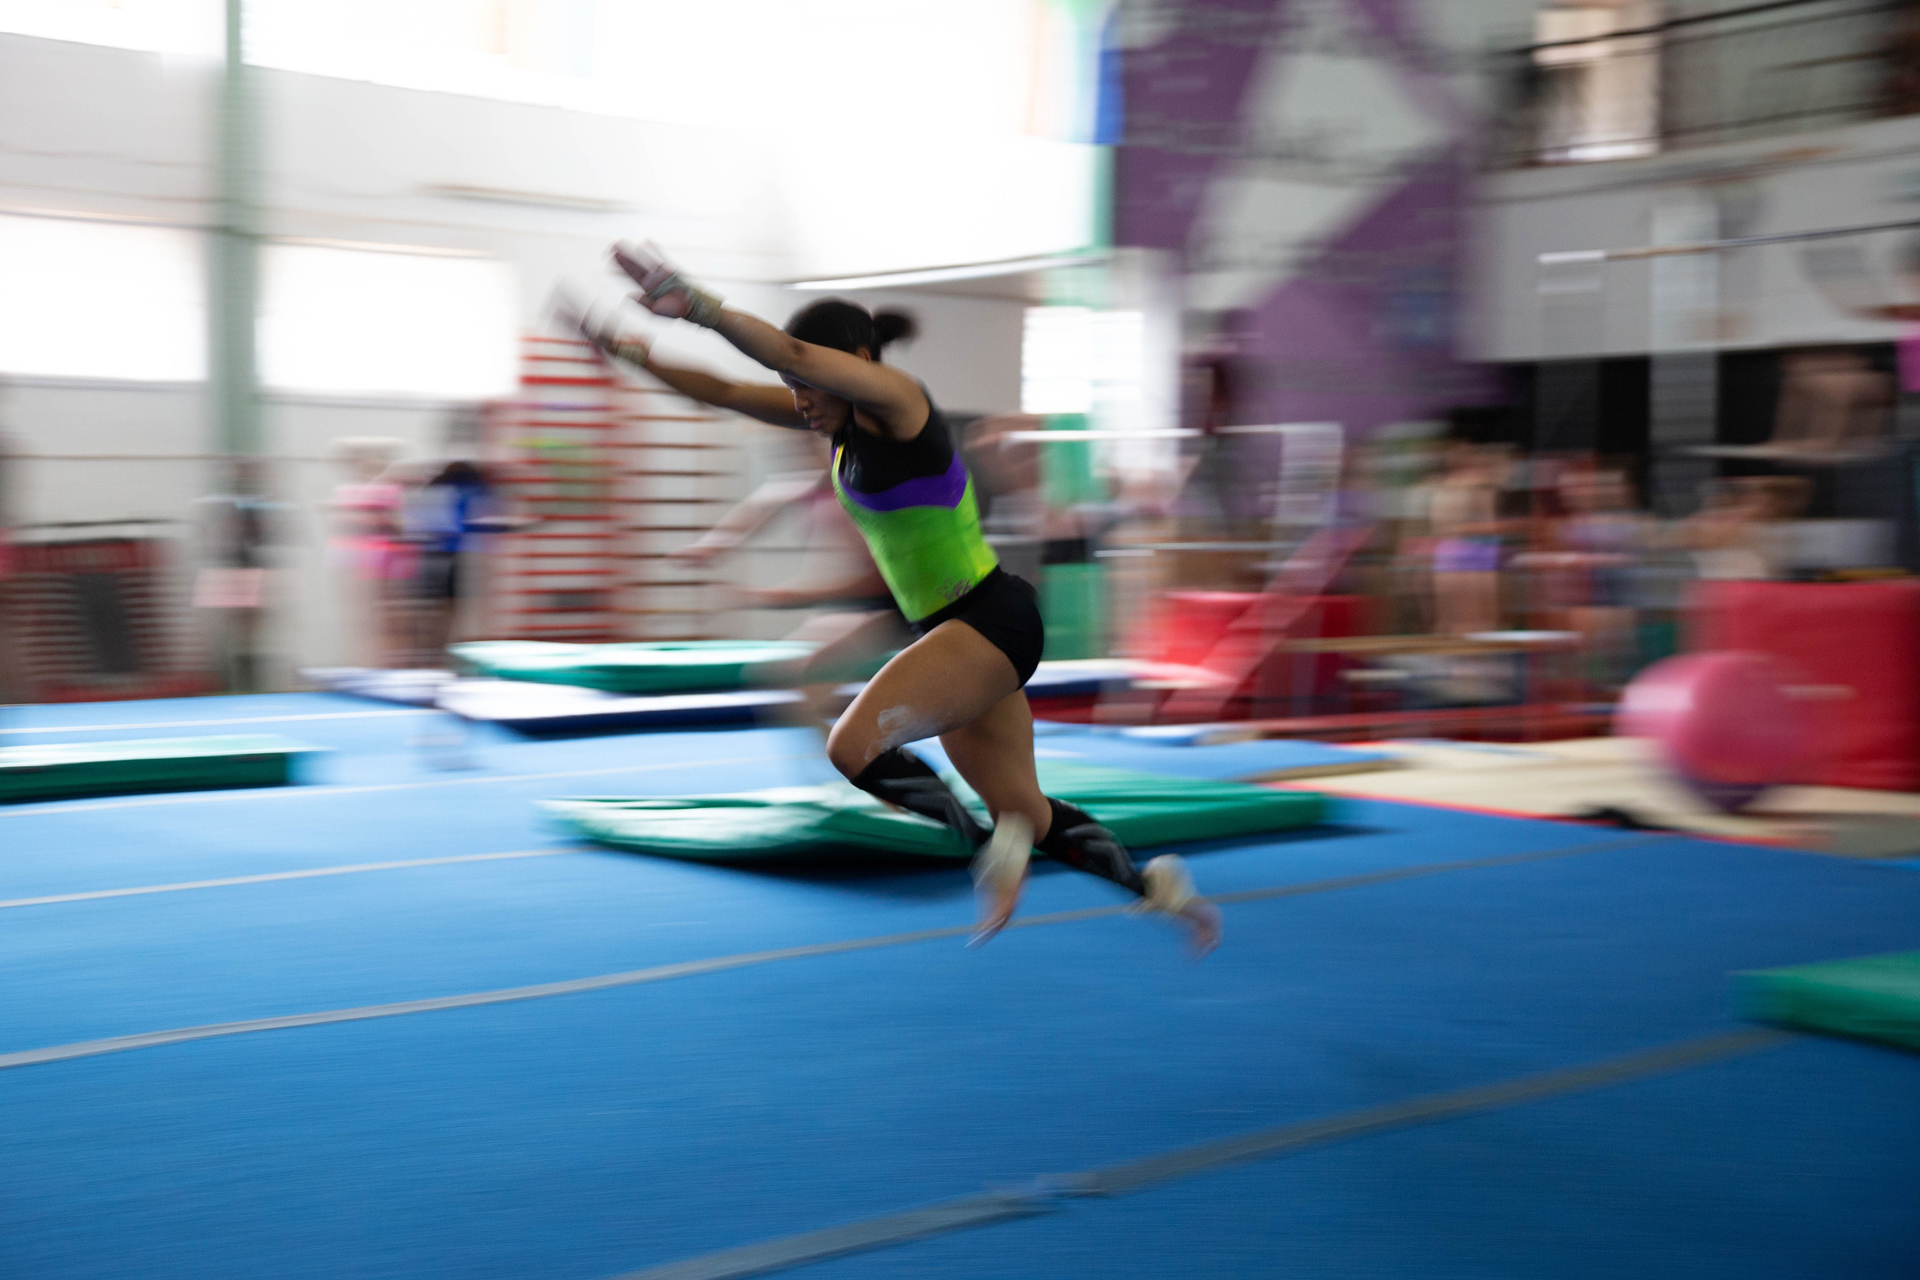 19 November 2019: Caitlin Rooskrantz training at the Johannesburg Gymnastics Centre in Newlands, Johannesburg.